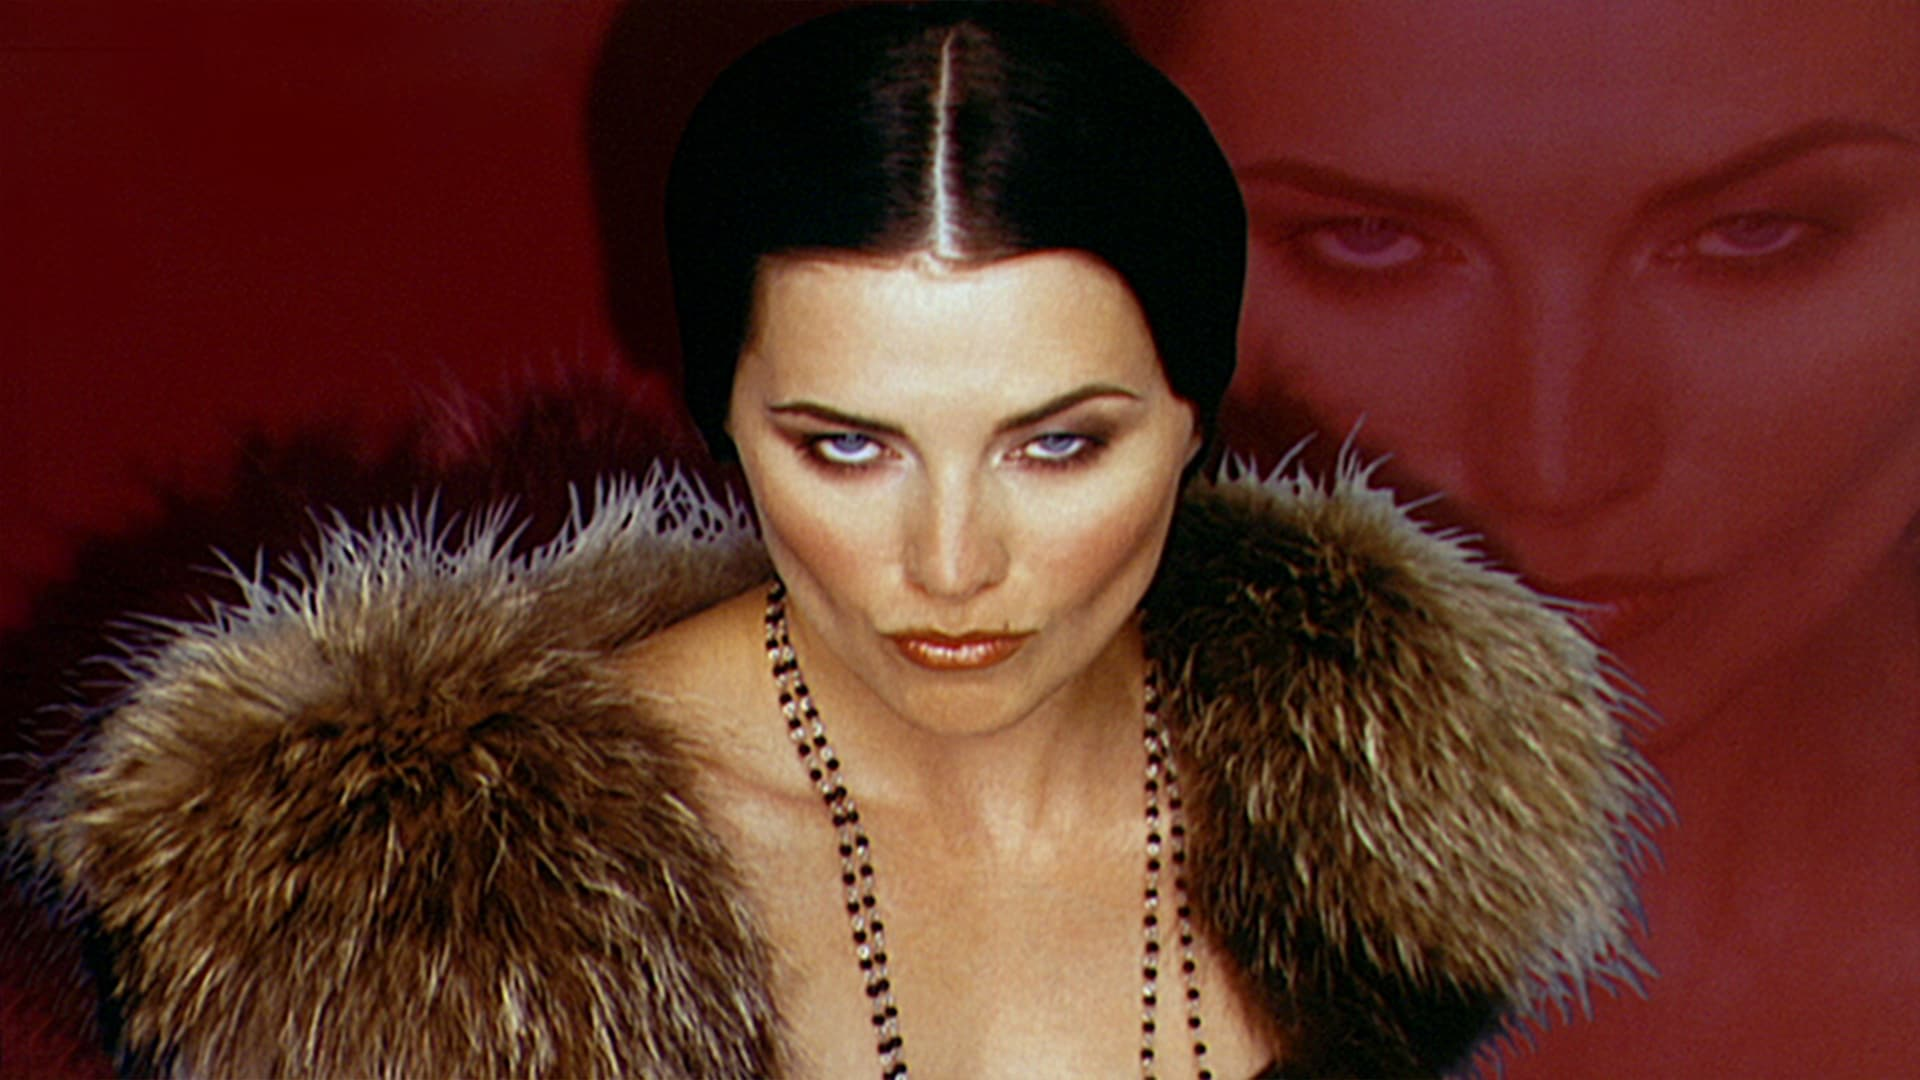 Lucy Lawless: October 17, 1998